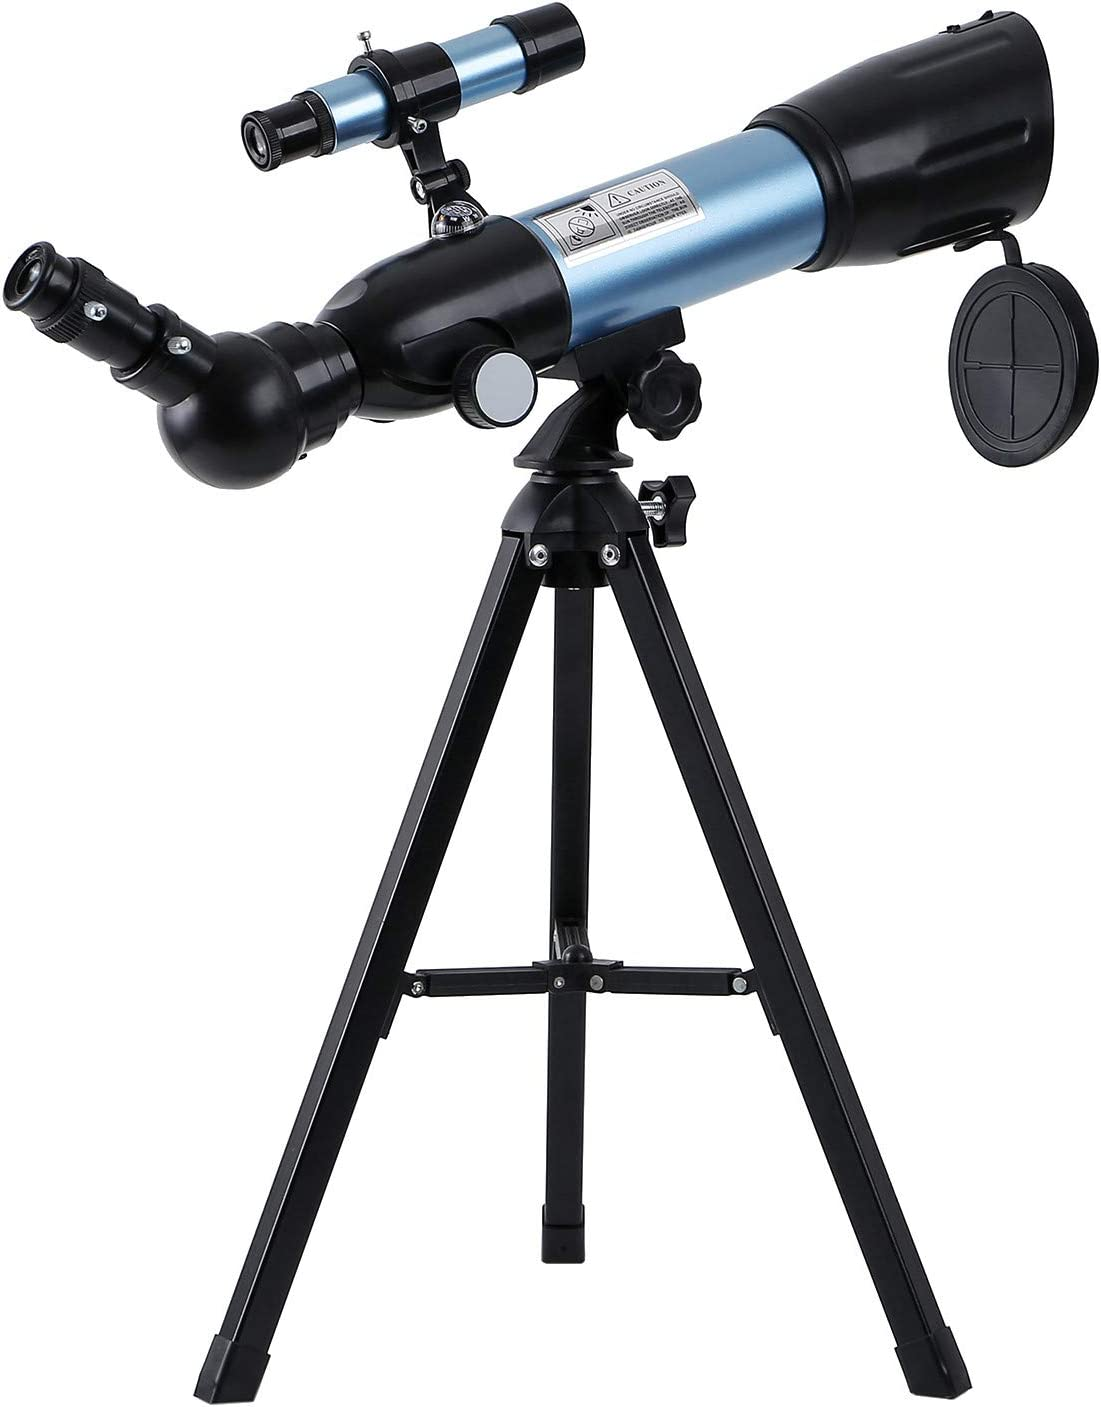 BEFOKA 36050N New products world's highest quality 55% OFF popular Students Science Telescope Education Astronomical